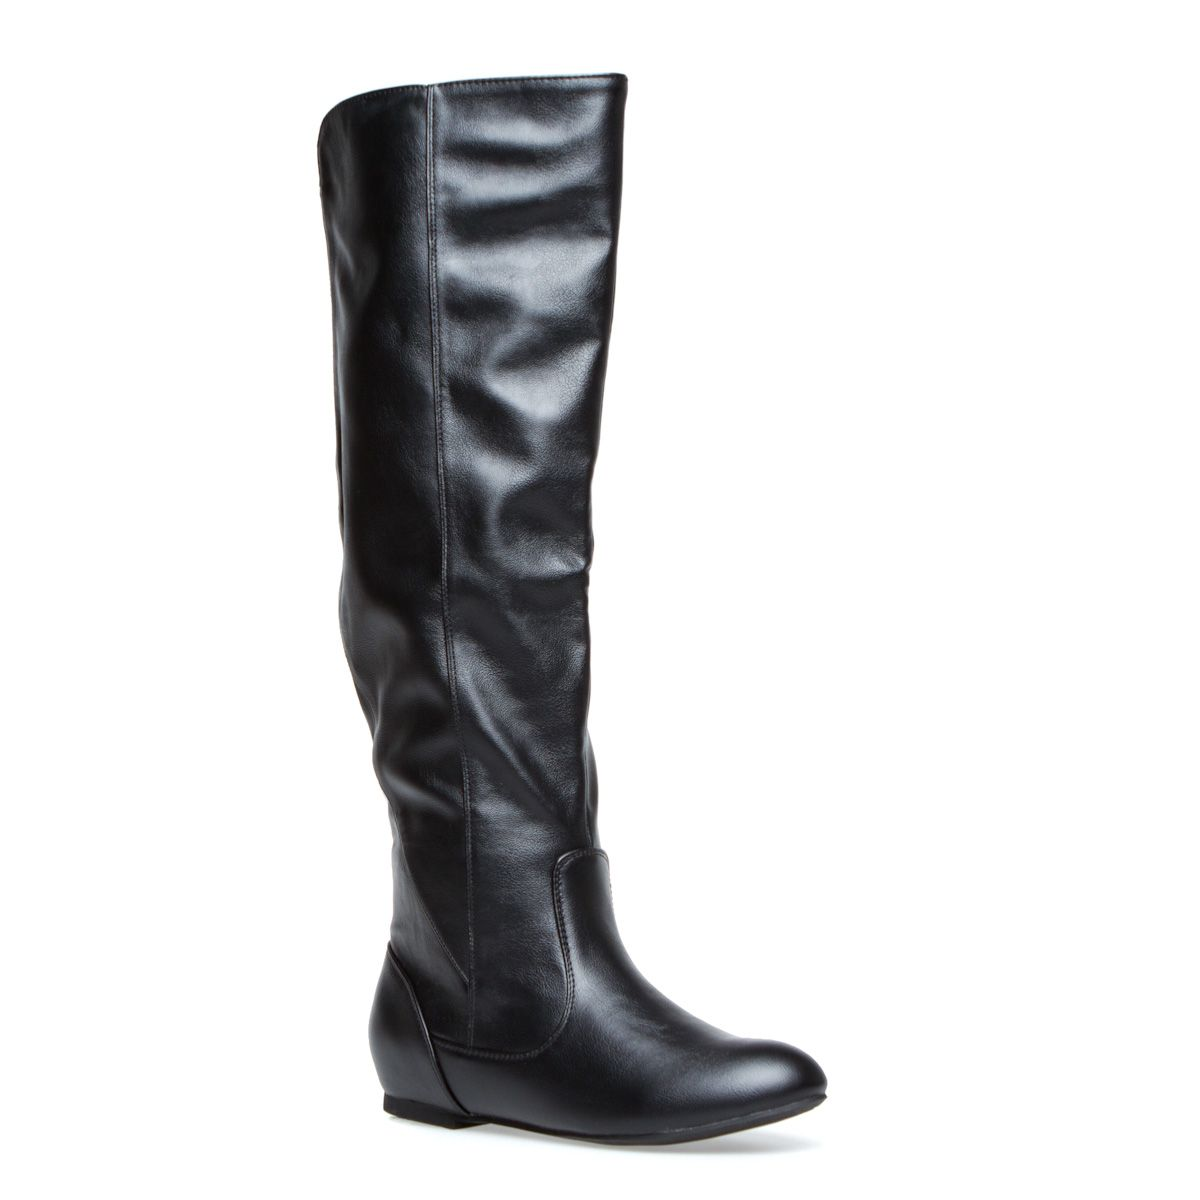 515f6c9efd33 Black leather boots